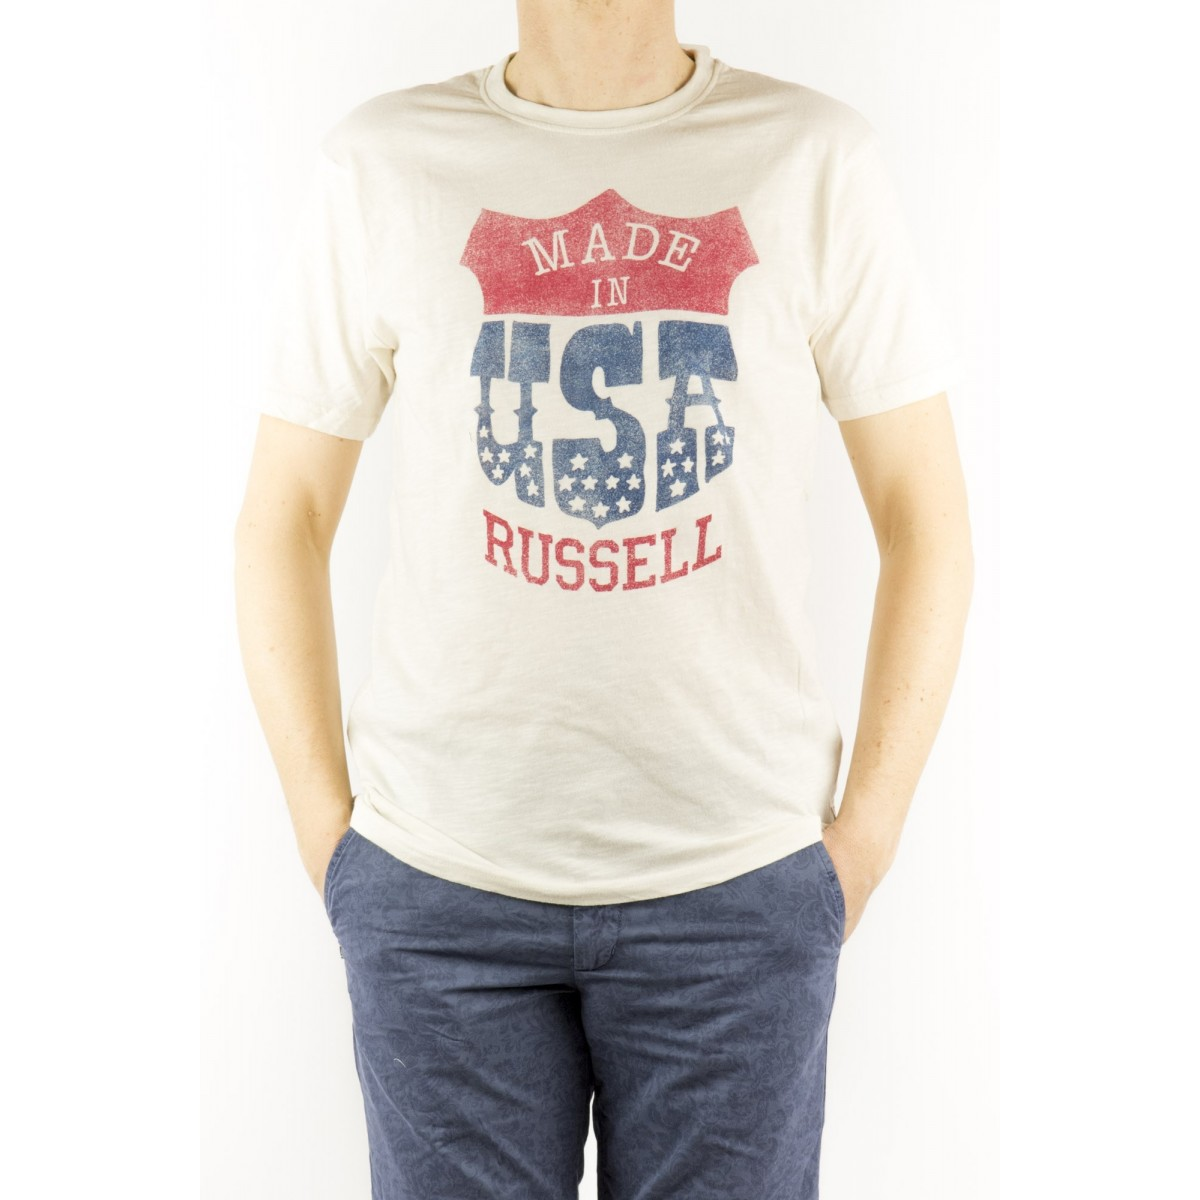 T-Shirt Russell Athletic Vintage - Russell Athletic Vintage A5 615 - 1